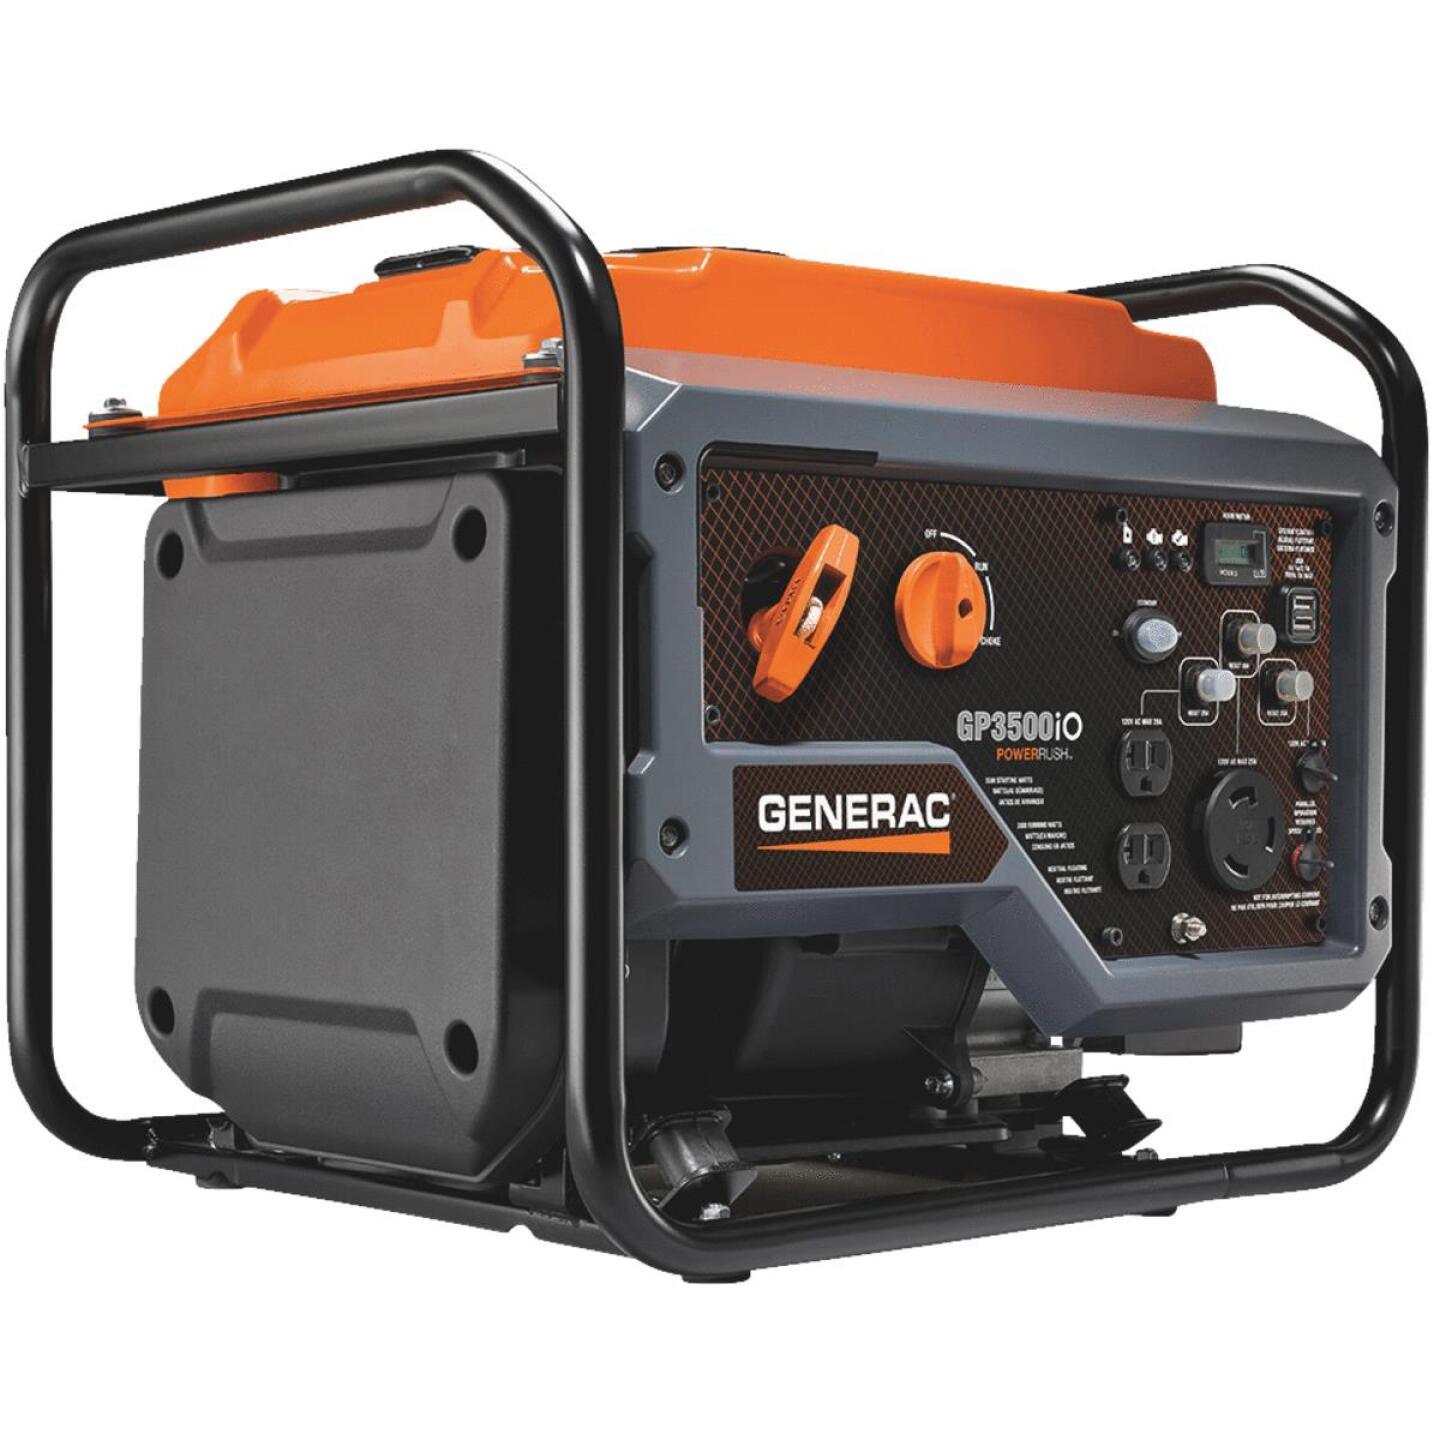 Generac GP3500iO 3000W Gasoline Powered Open Frame Recoil Pull Start Inverter Generator Image 1